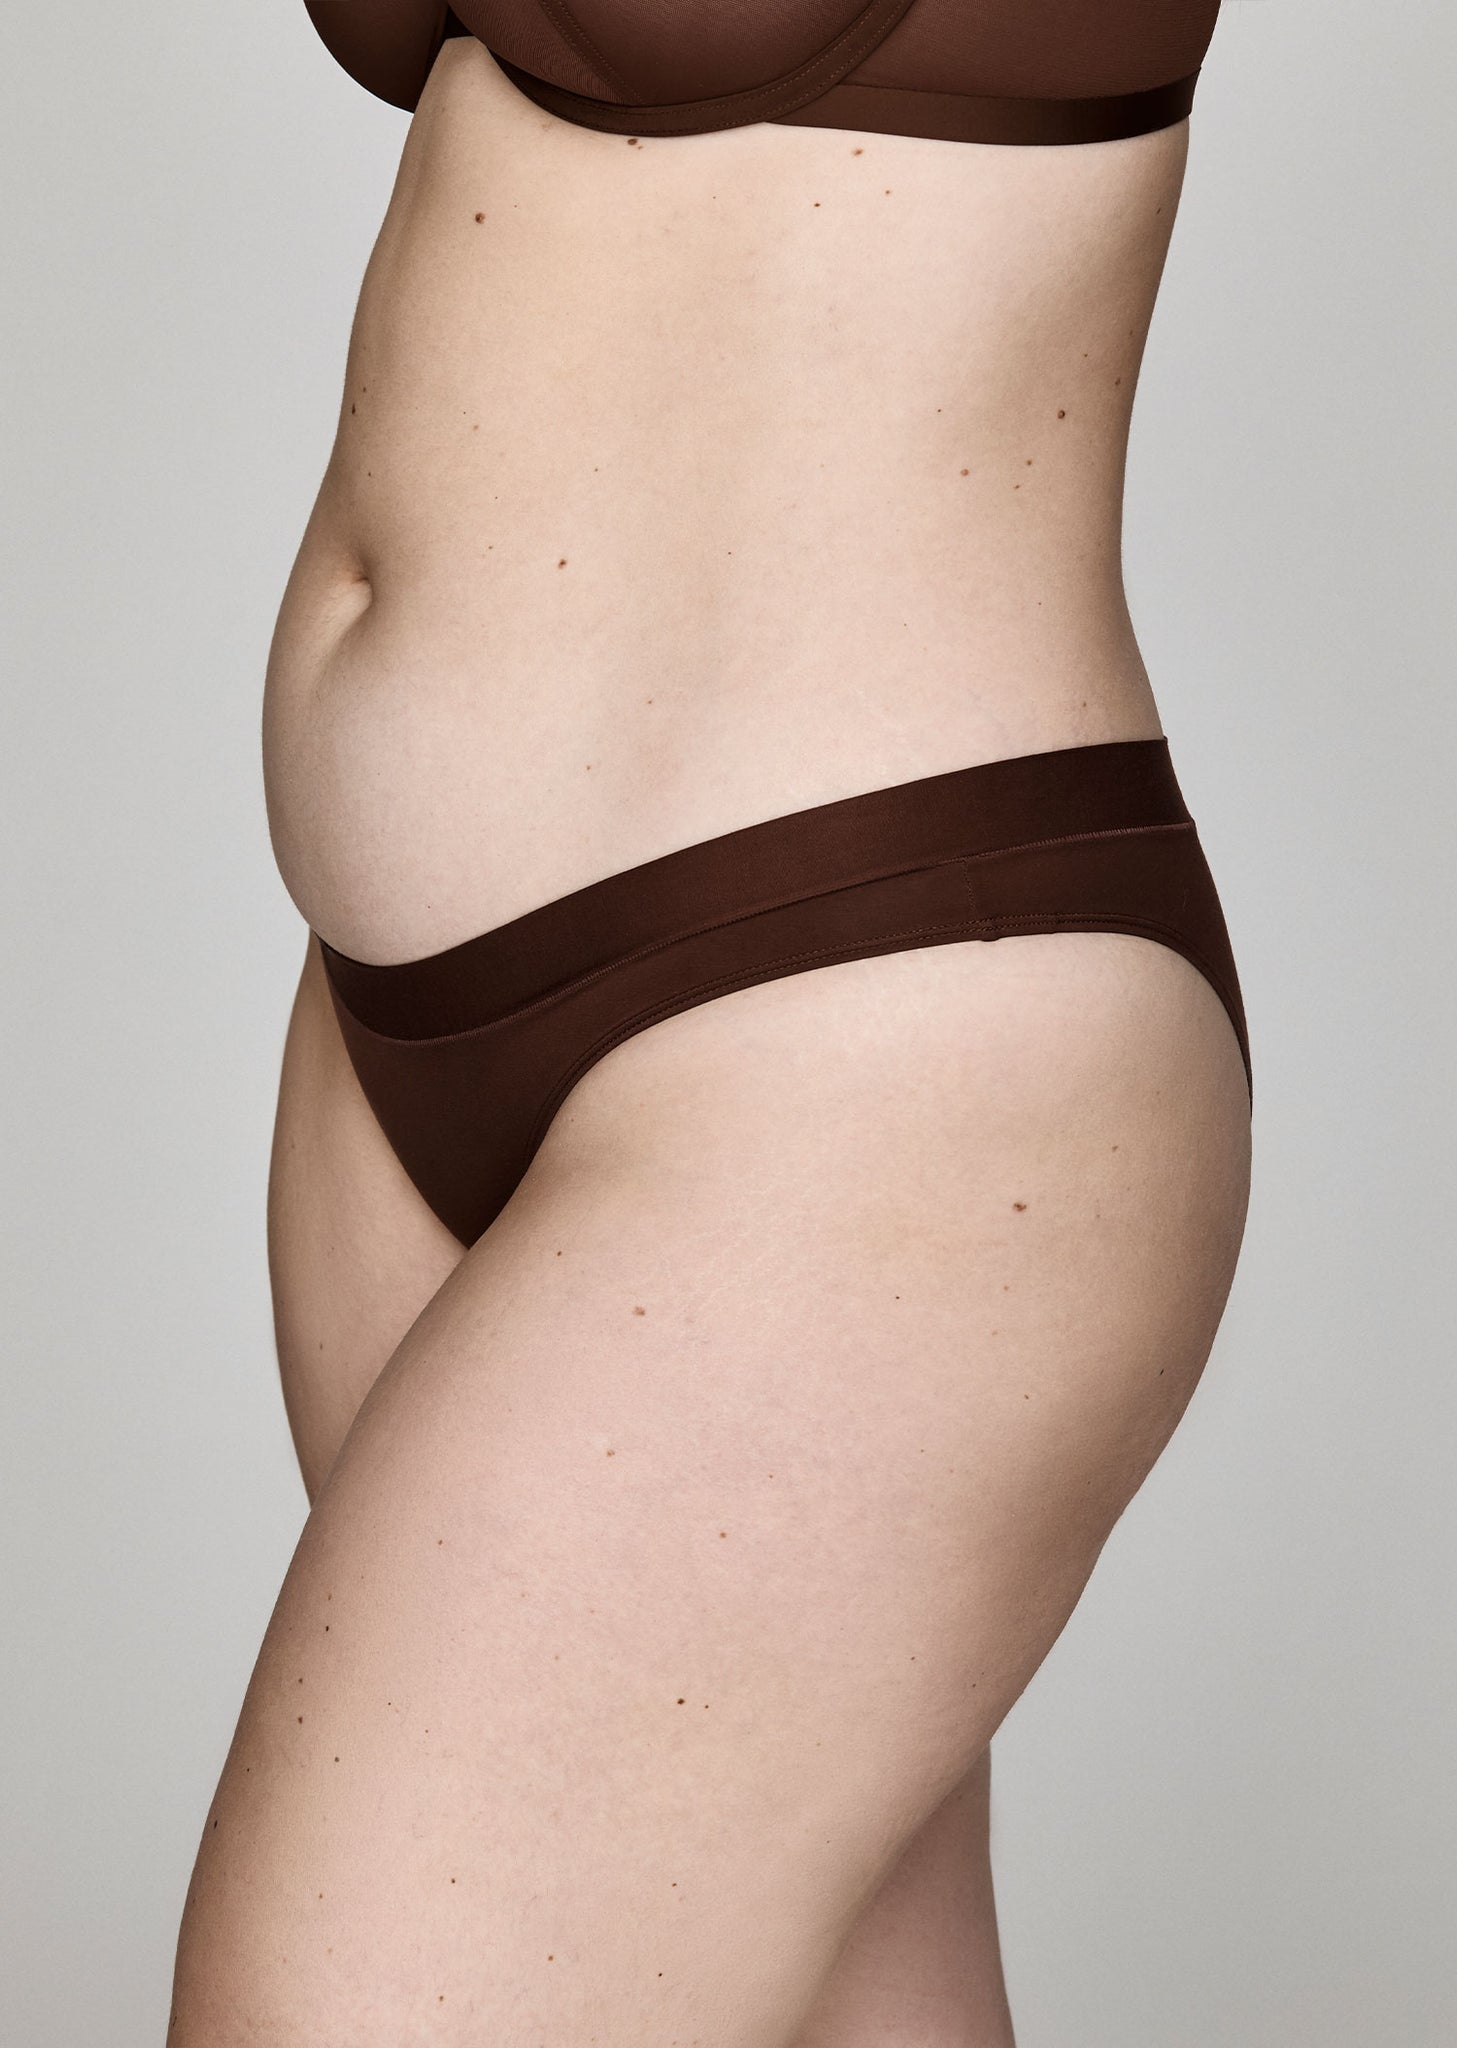 The Bikini in Espresso - CUUP